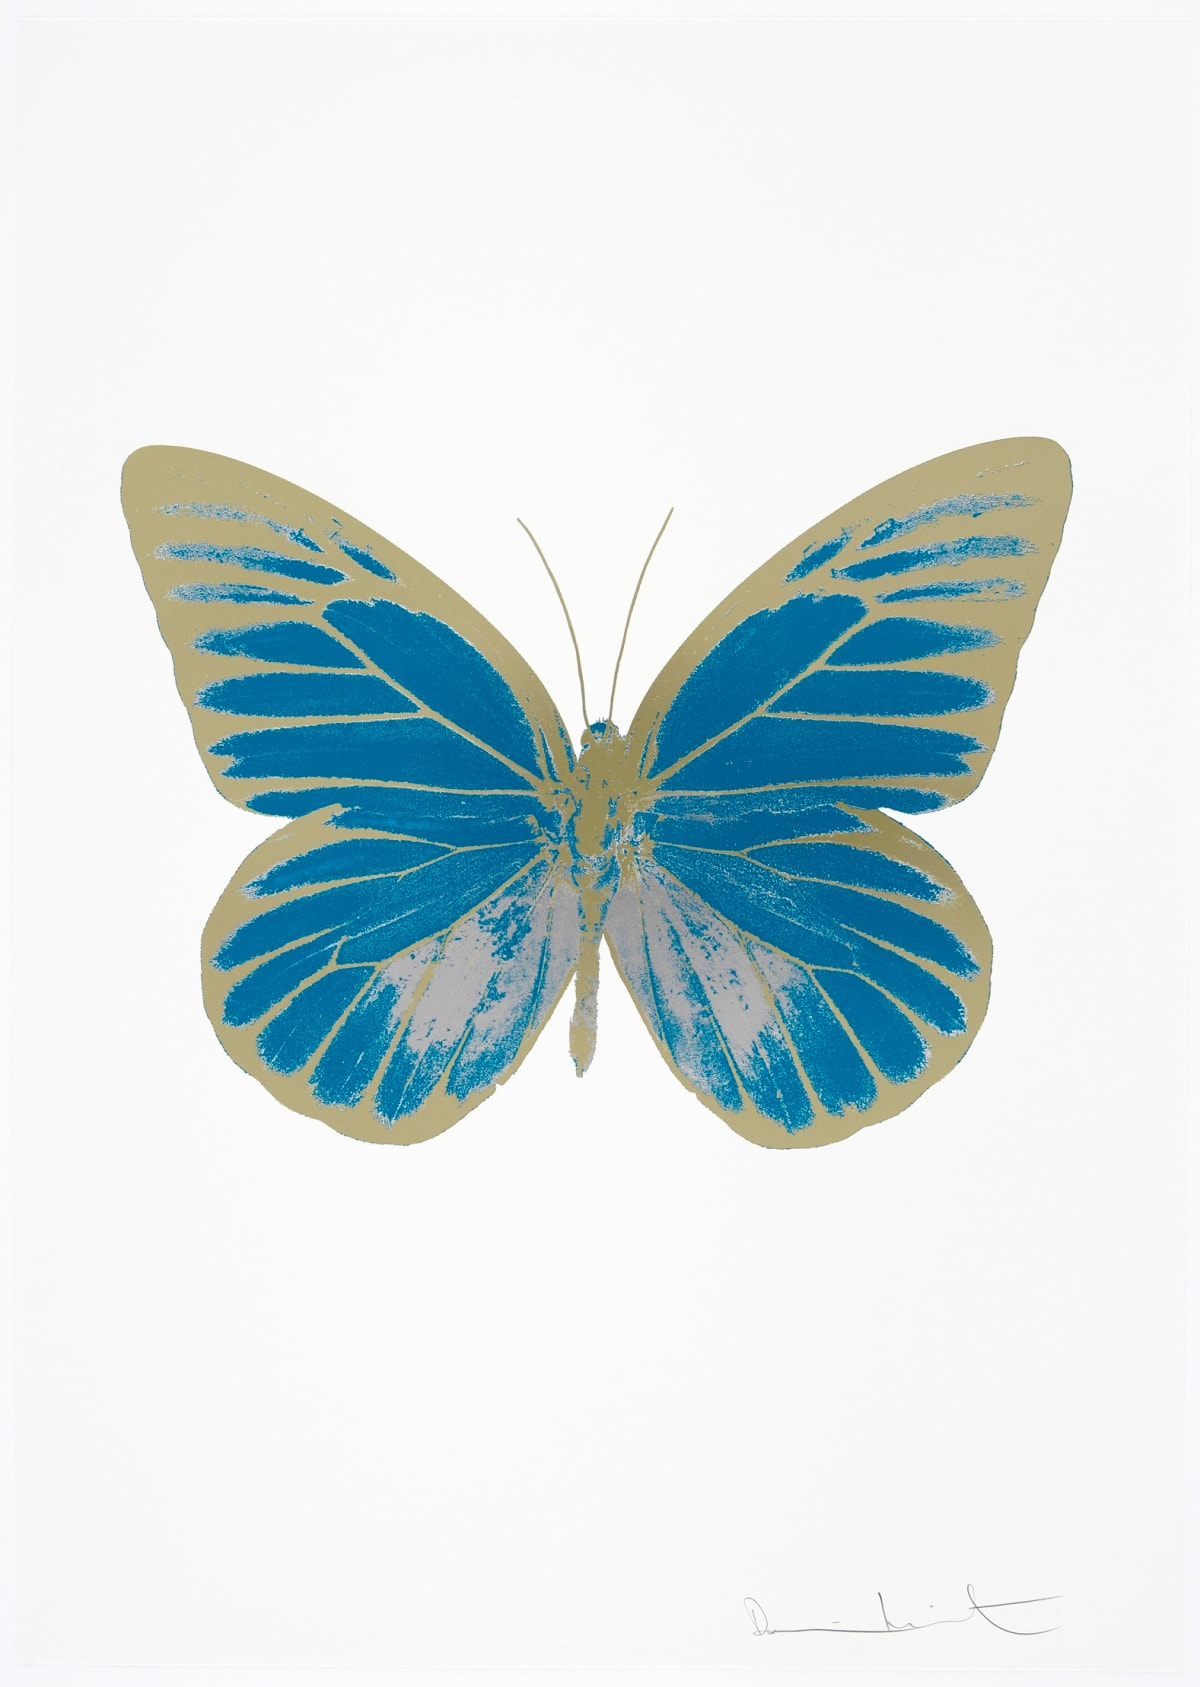 Damien Hirst The Souls I - Topaz/Silver Gloss/Cool Gold, 2010 3 colour foil block on 300gsm Arches 88 archival paper. Signed and numbered. Published by Paul Stolper and Other Criteria 72 x 51cm OC7758 / 659-21 Edition of 15